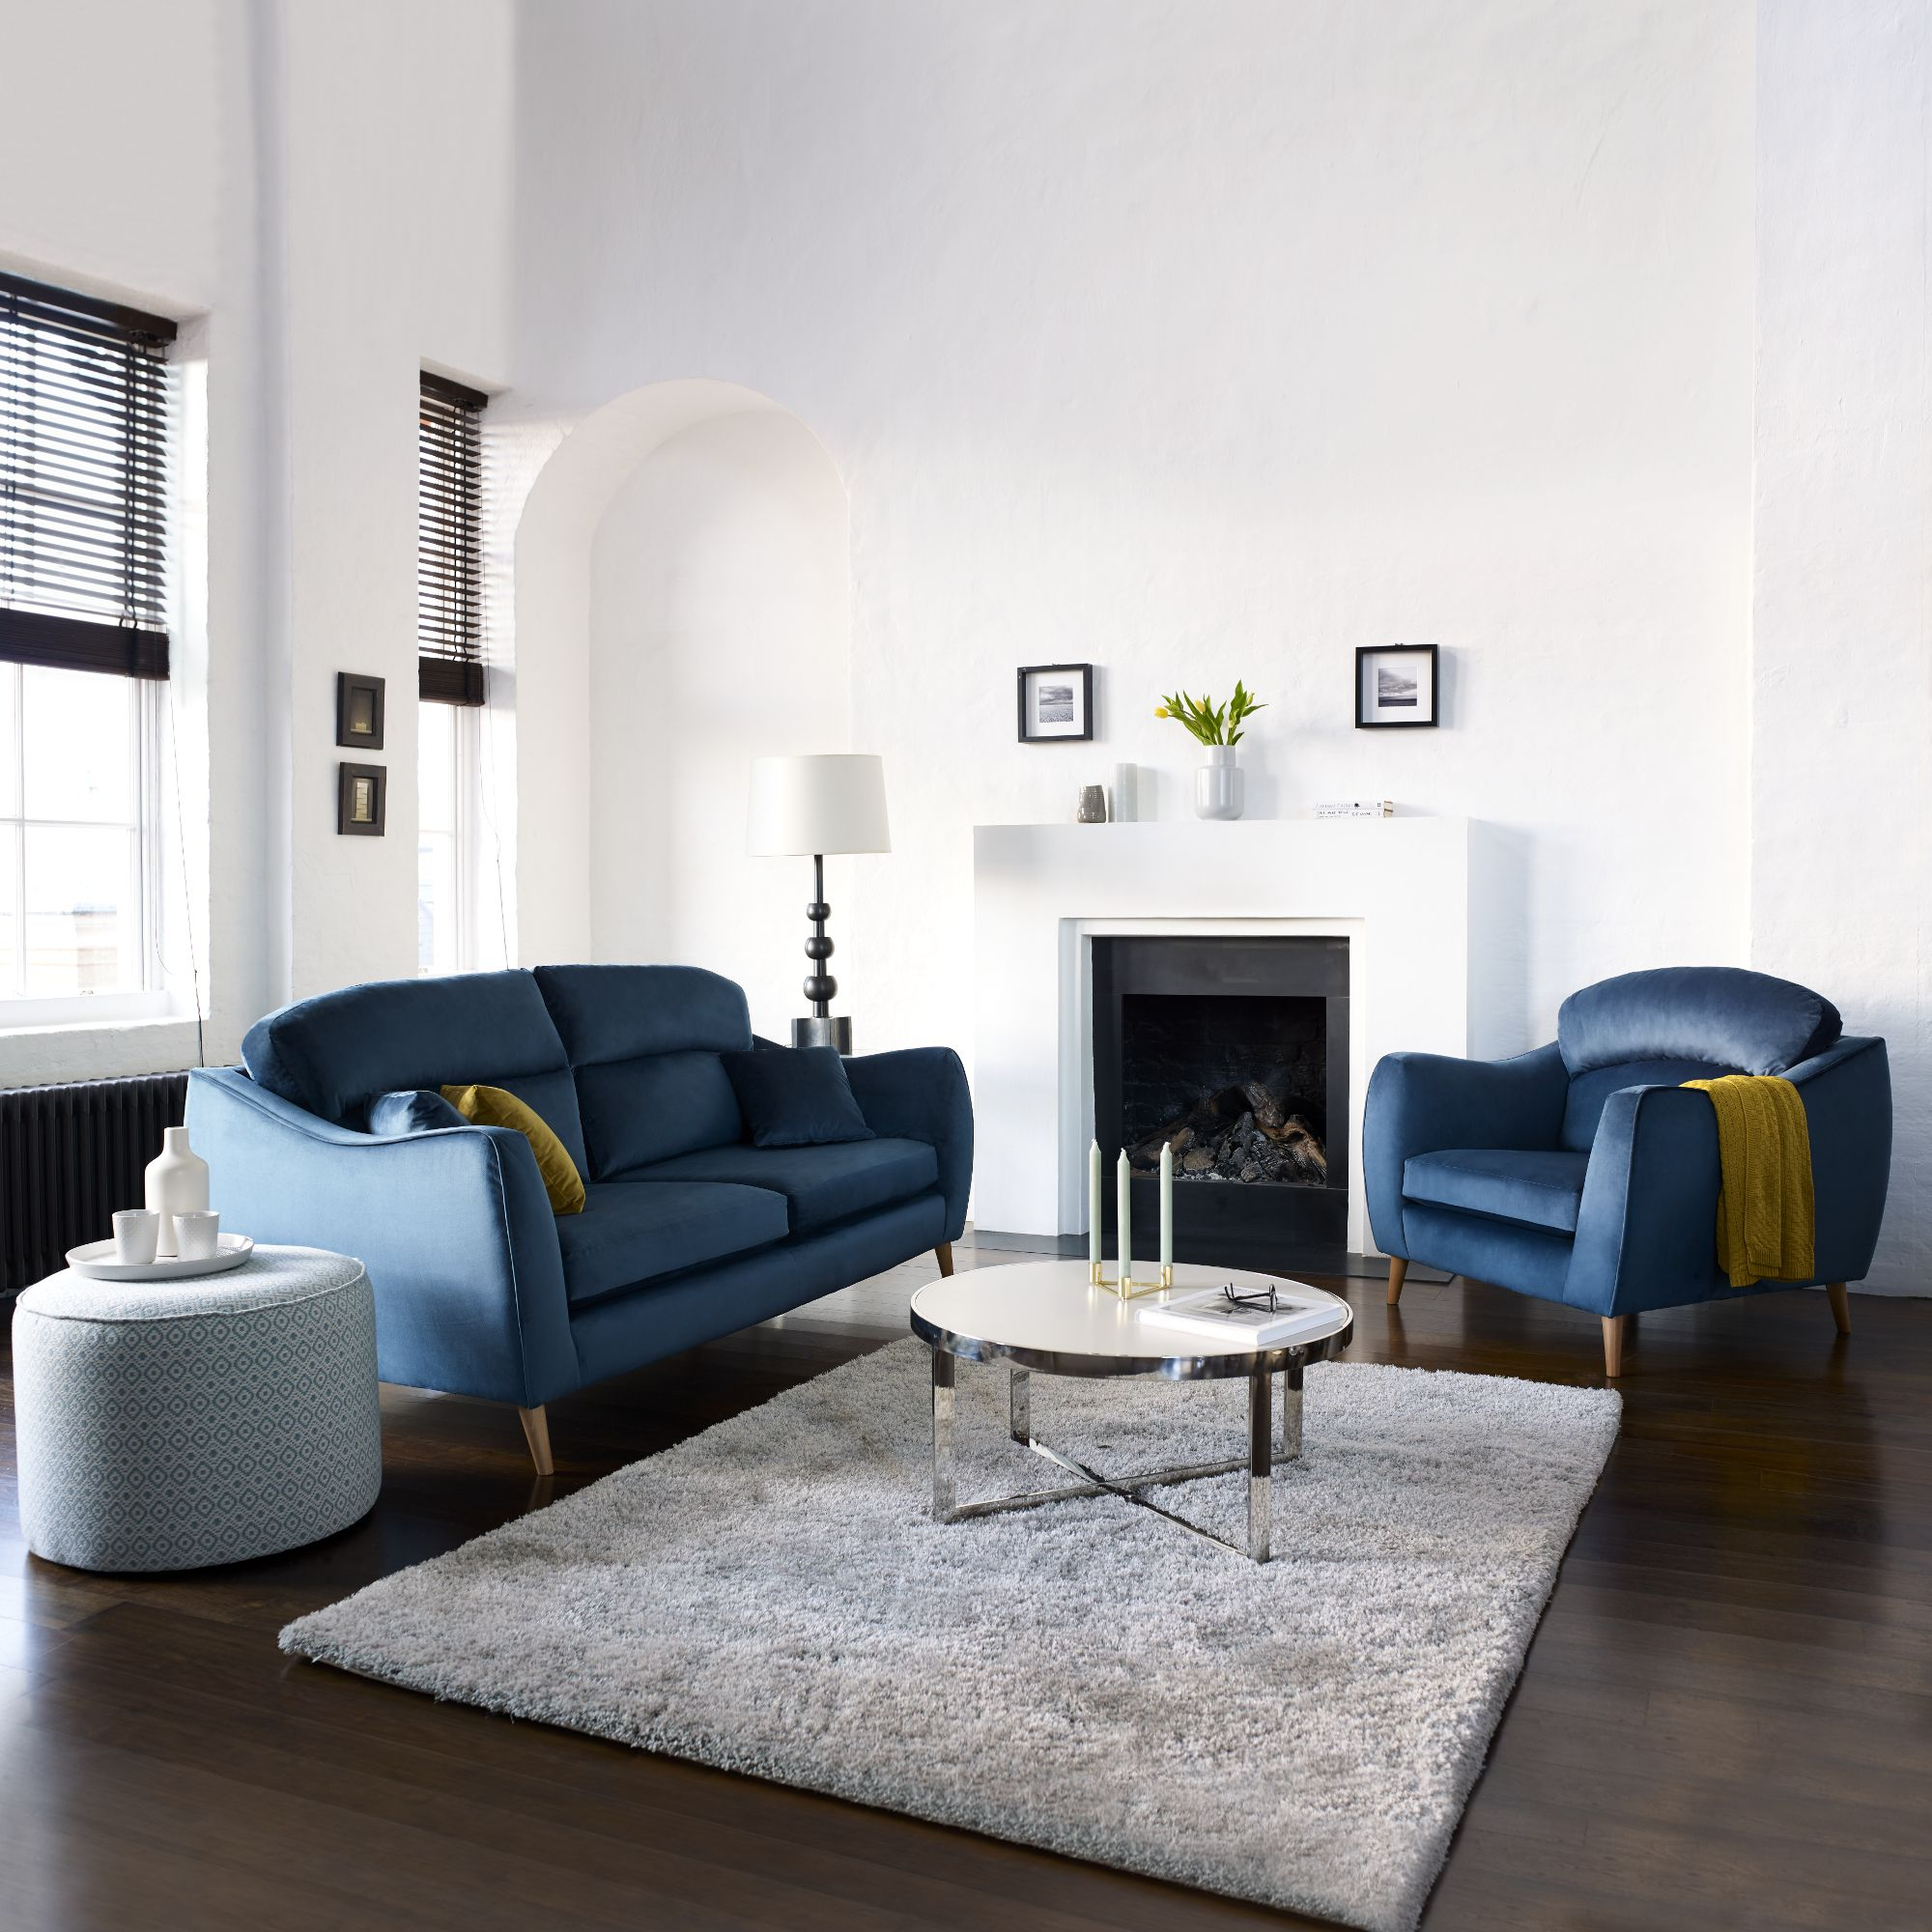 compact living room furniture. Compact Living Room Furniture. Edit 01 Chaise Sofa In Teal Velvet Furniture L